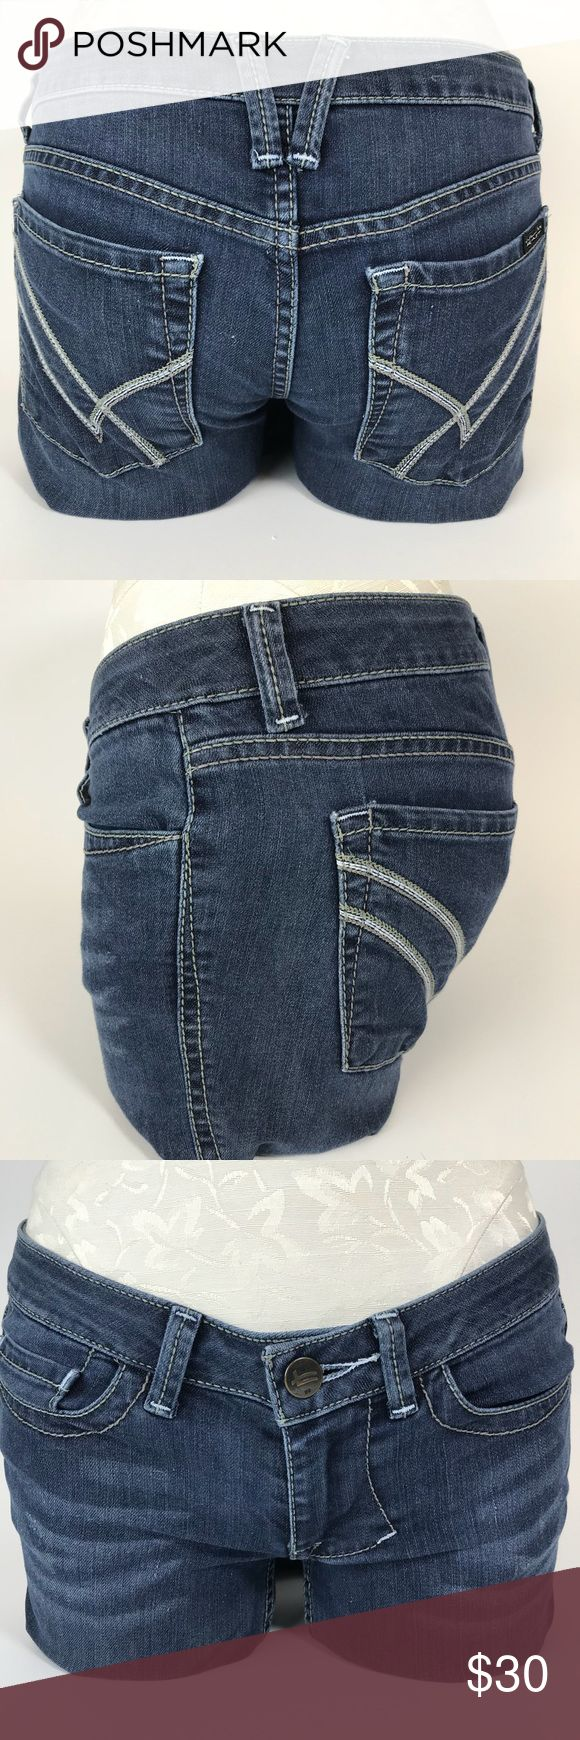 """William Rast jeans Good condition straight leg jeans 6.5"""" rise, 32"""" inseam ( small like of demarcation where they were tucked under for length. Shown in photos, considered in price) William Rast Jeans Straight Leg"""